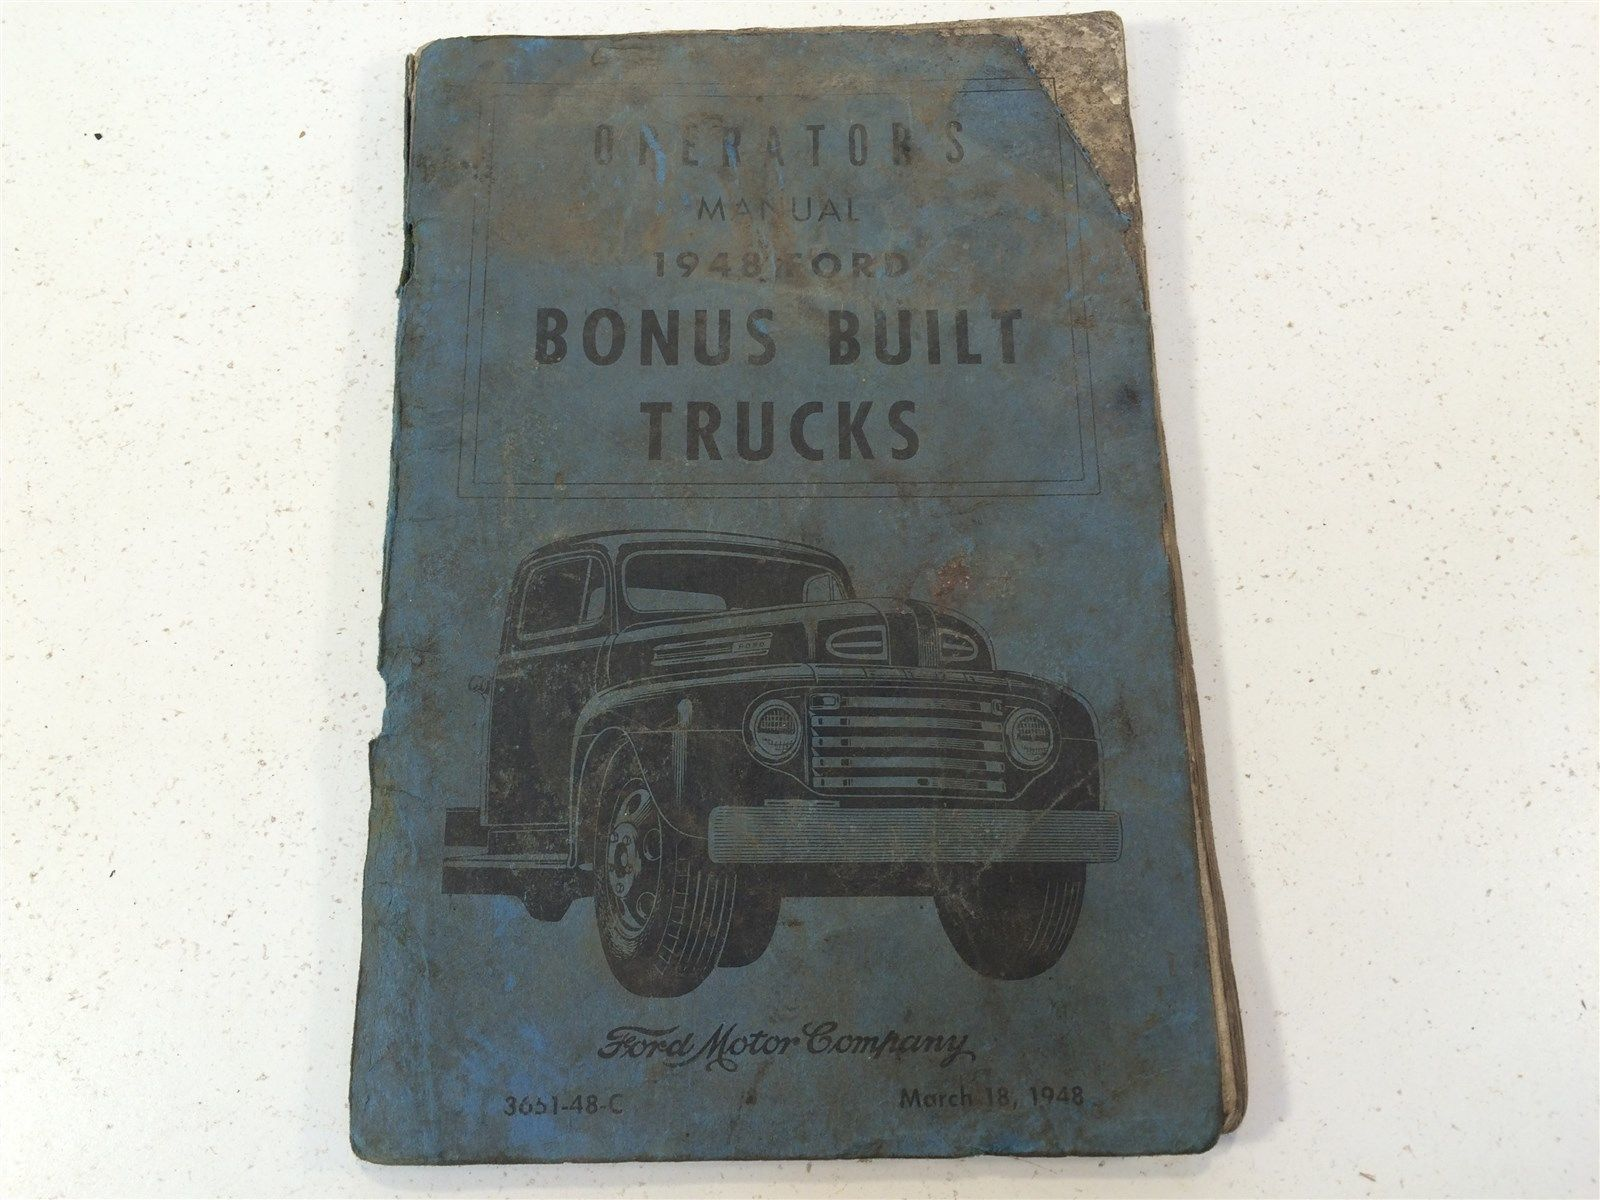 1948 Ford Bonus Built Trucks Operator's Manual 3651-48-C OEM Original